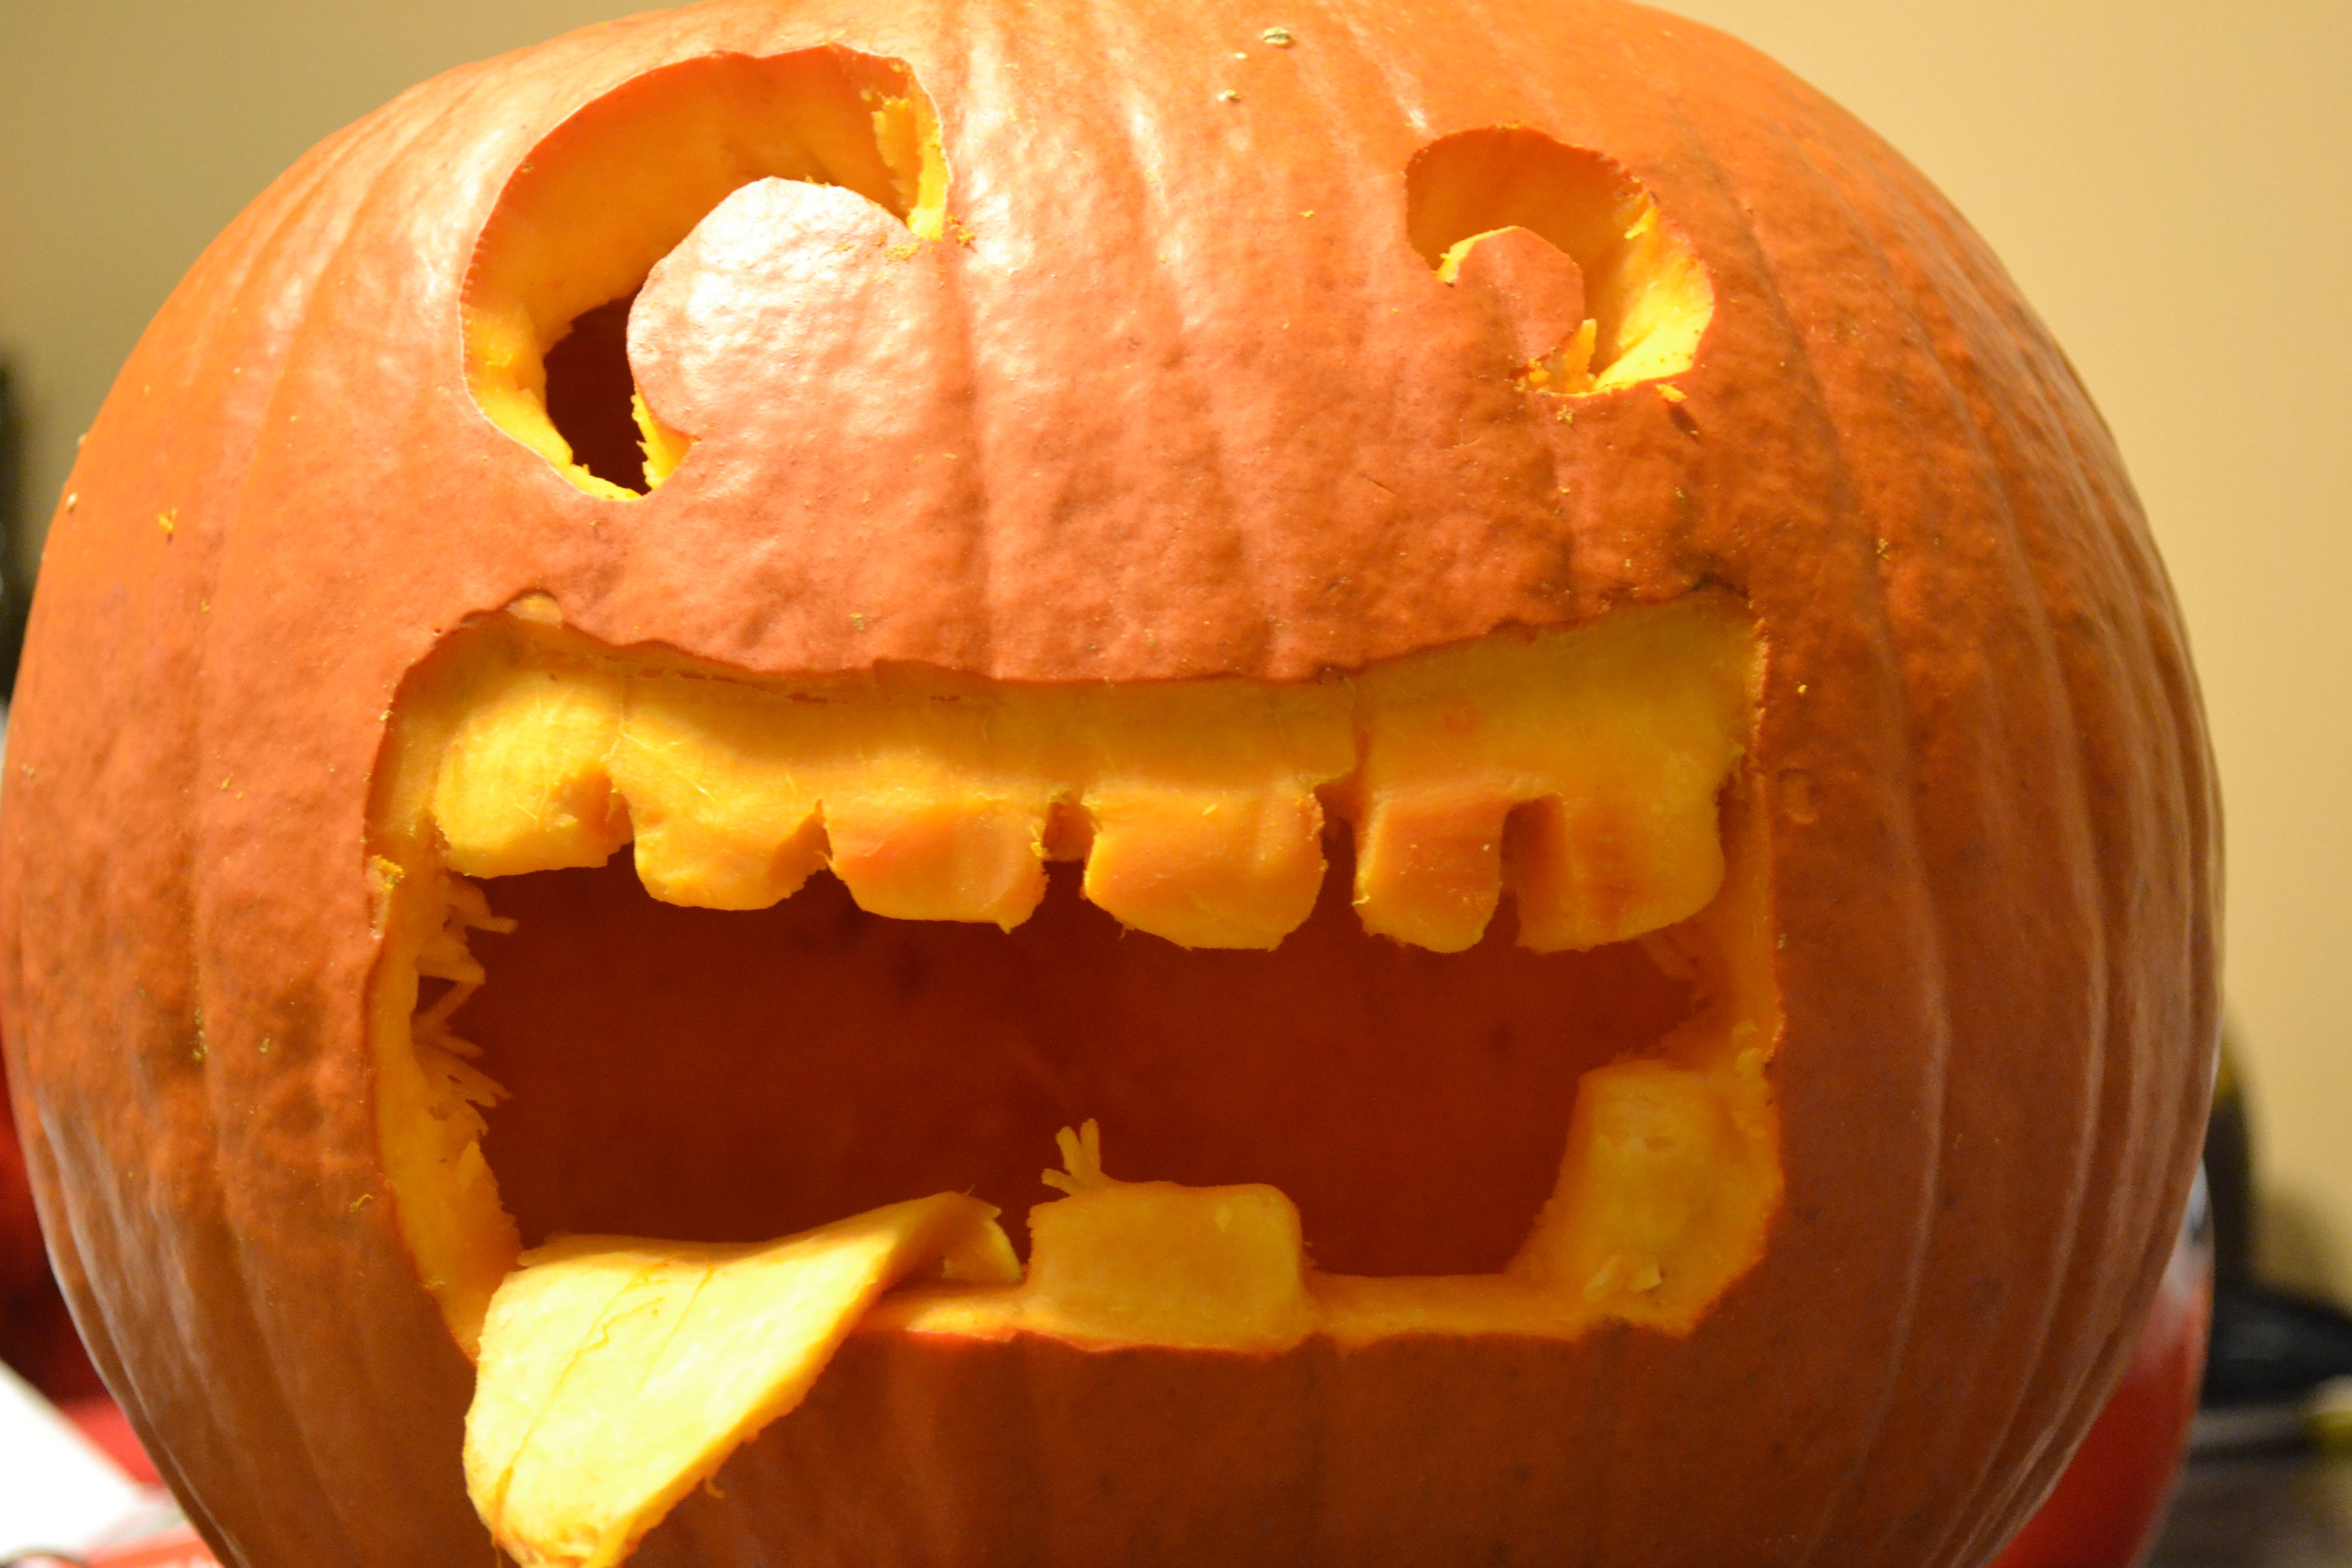 That's the perfect face for my pumpkin!!